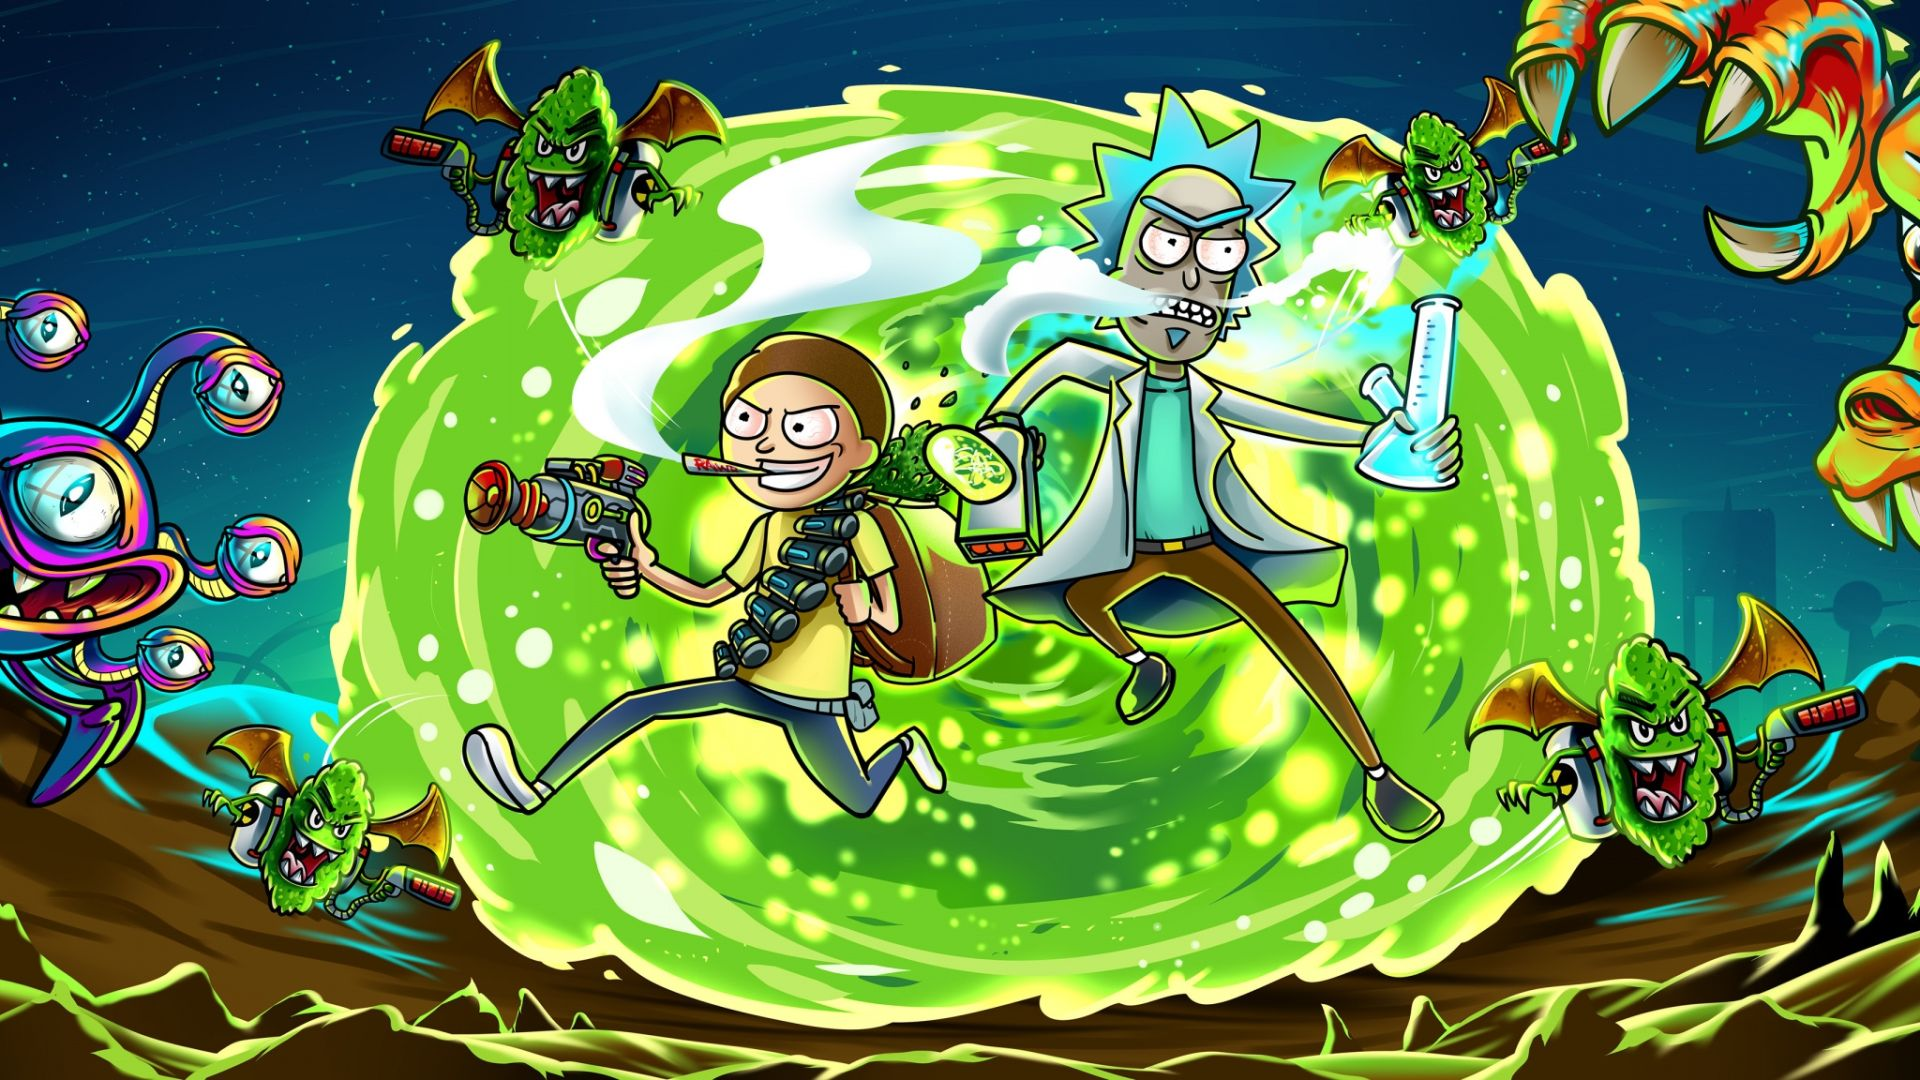 60 Rick and Morty Wallpapers   WallpaperBoat 1920x1080